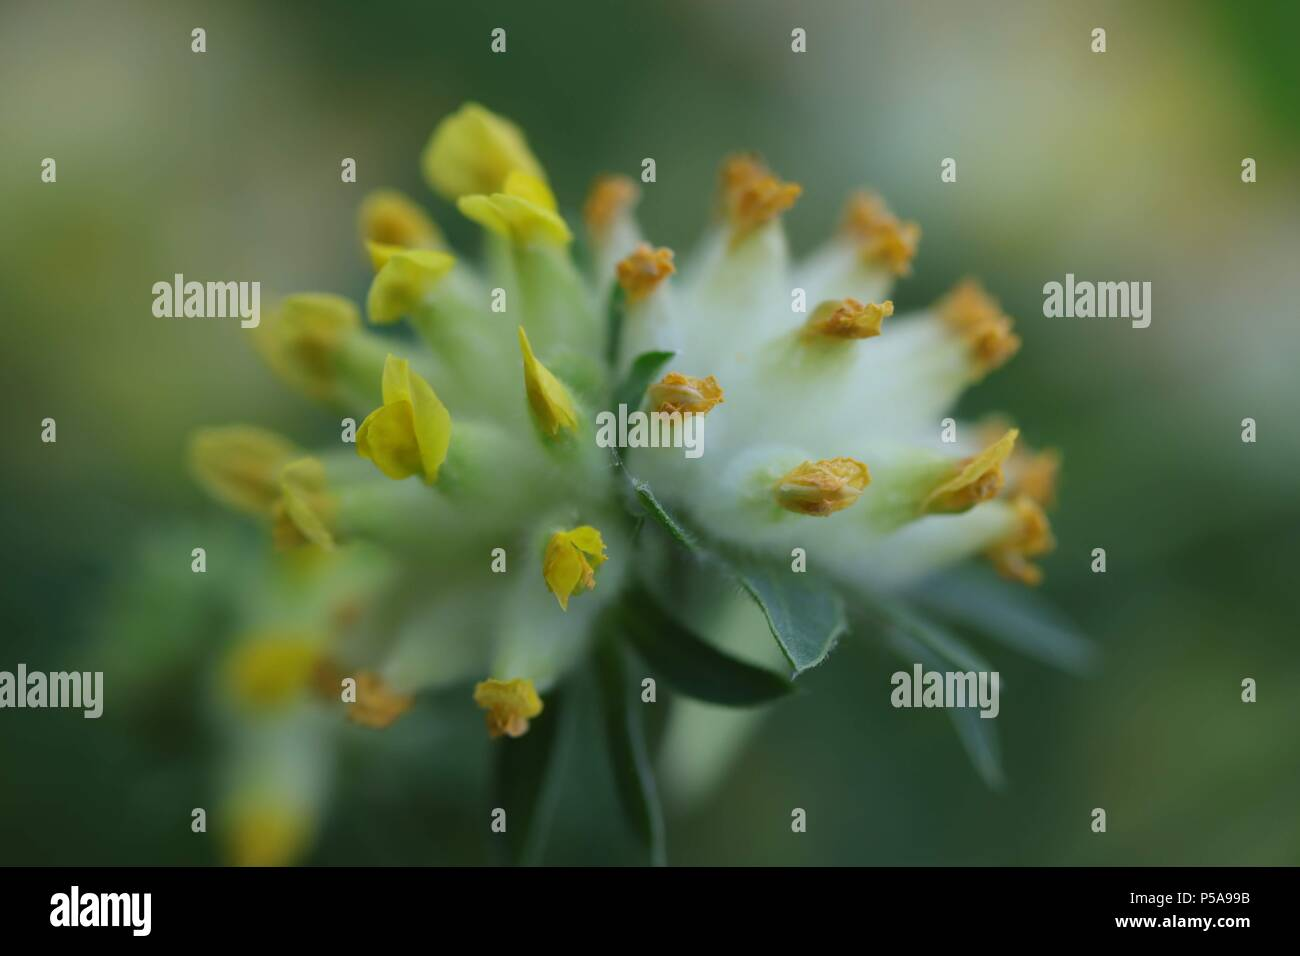 Yellow, White & Green Kidney Vetch Flower on a Yellow, White & Green Background - Stock Image